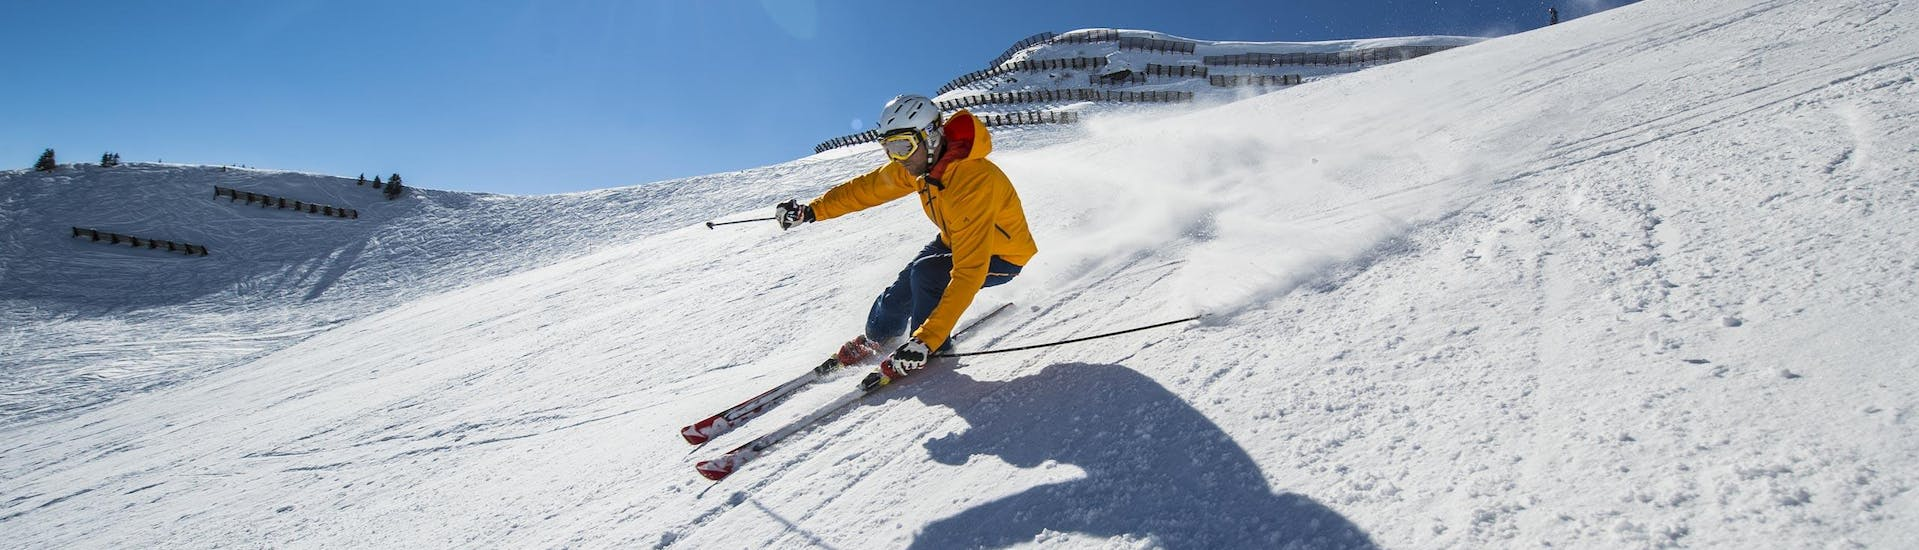 Skiing Lessons for Adults - Beginner: A skier is skiing down a sunny ski slope while participating in an activity offered by Skischool Mayrhofen 3000.